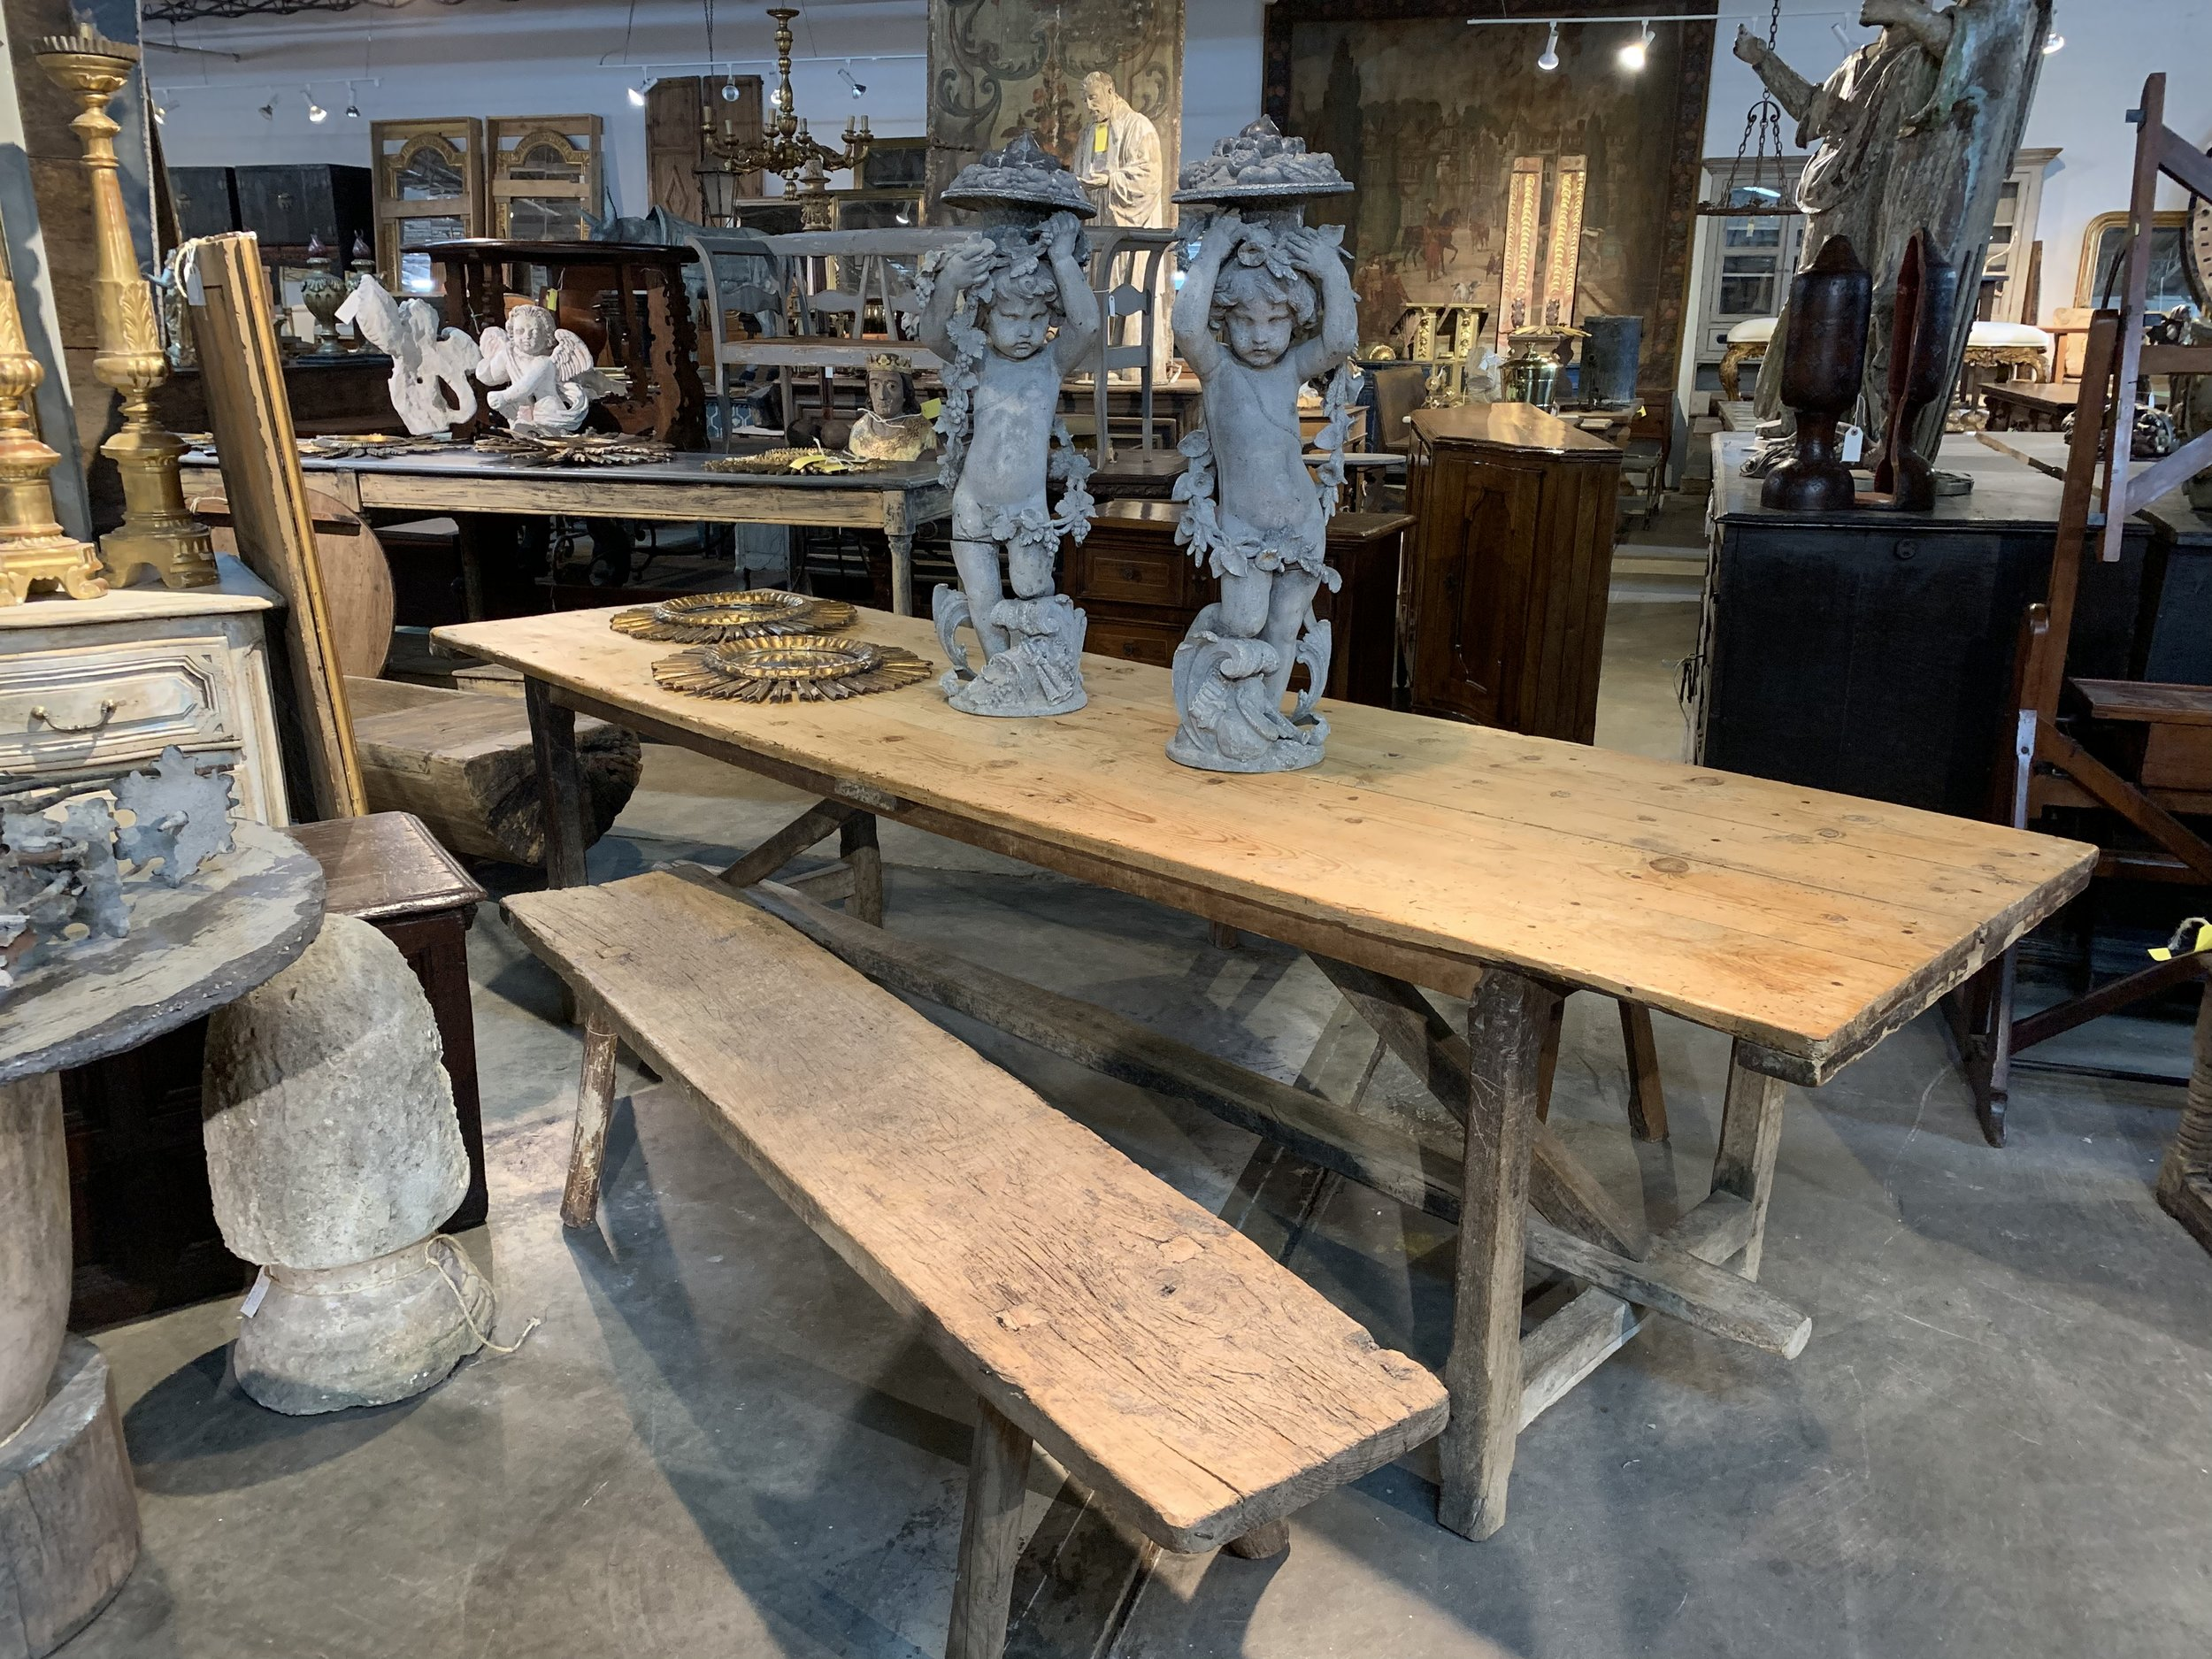 Photos courtesy of Provenance Antiques  A French 18th-century primitive farm table with benches with a pair of 19th-century zinc Putti from the Provence region of France